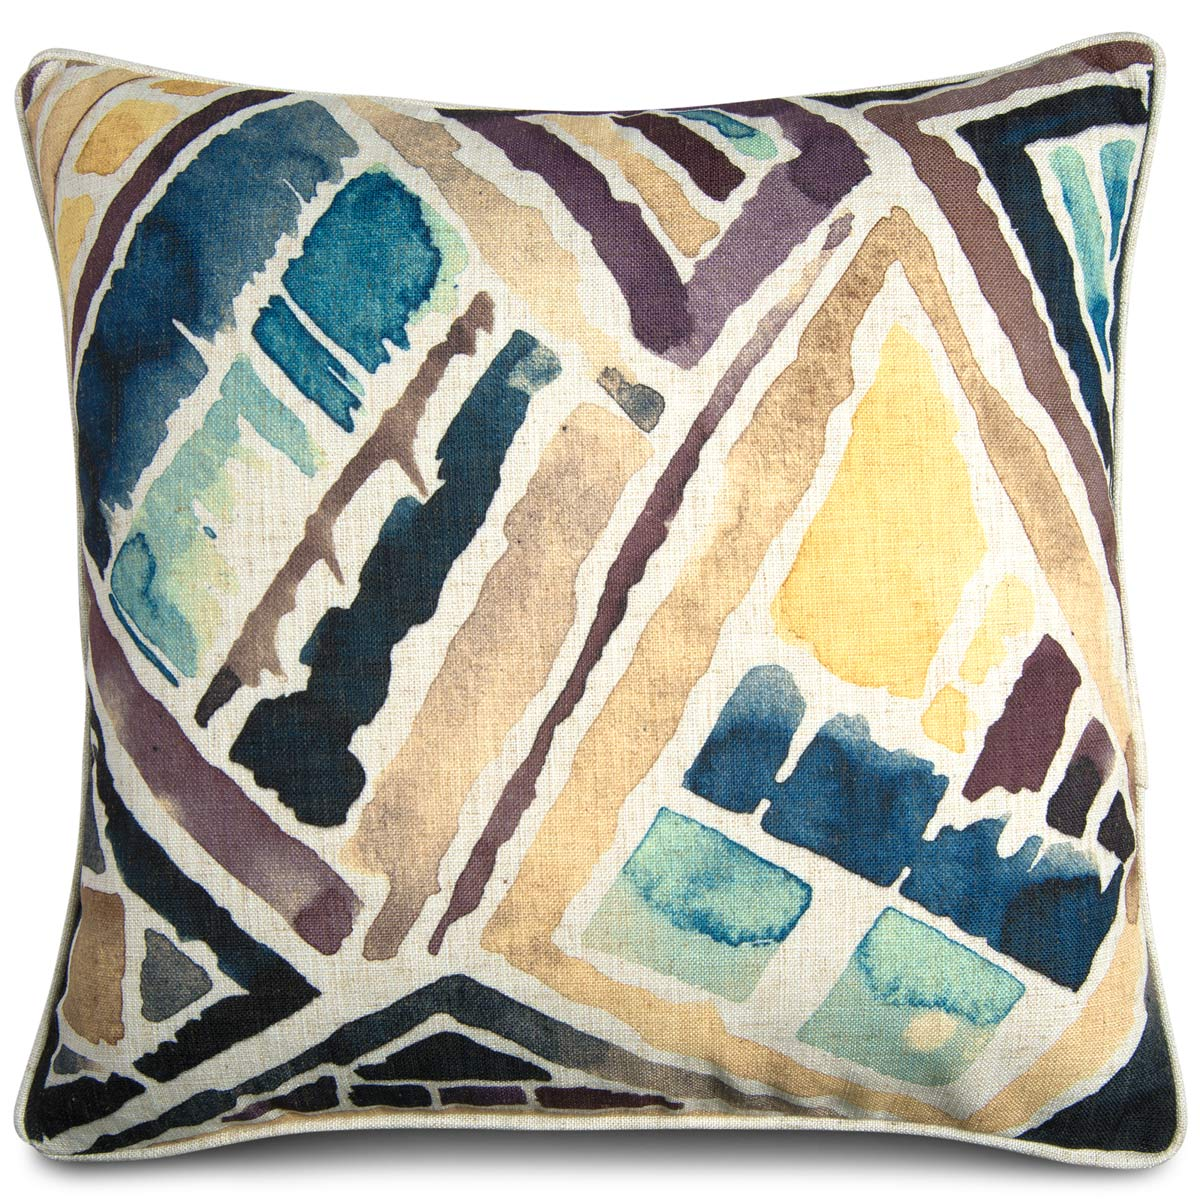 Jewel Tone Pillow - ModShop1.com